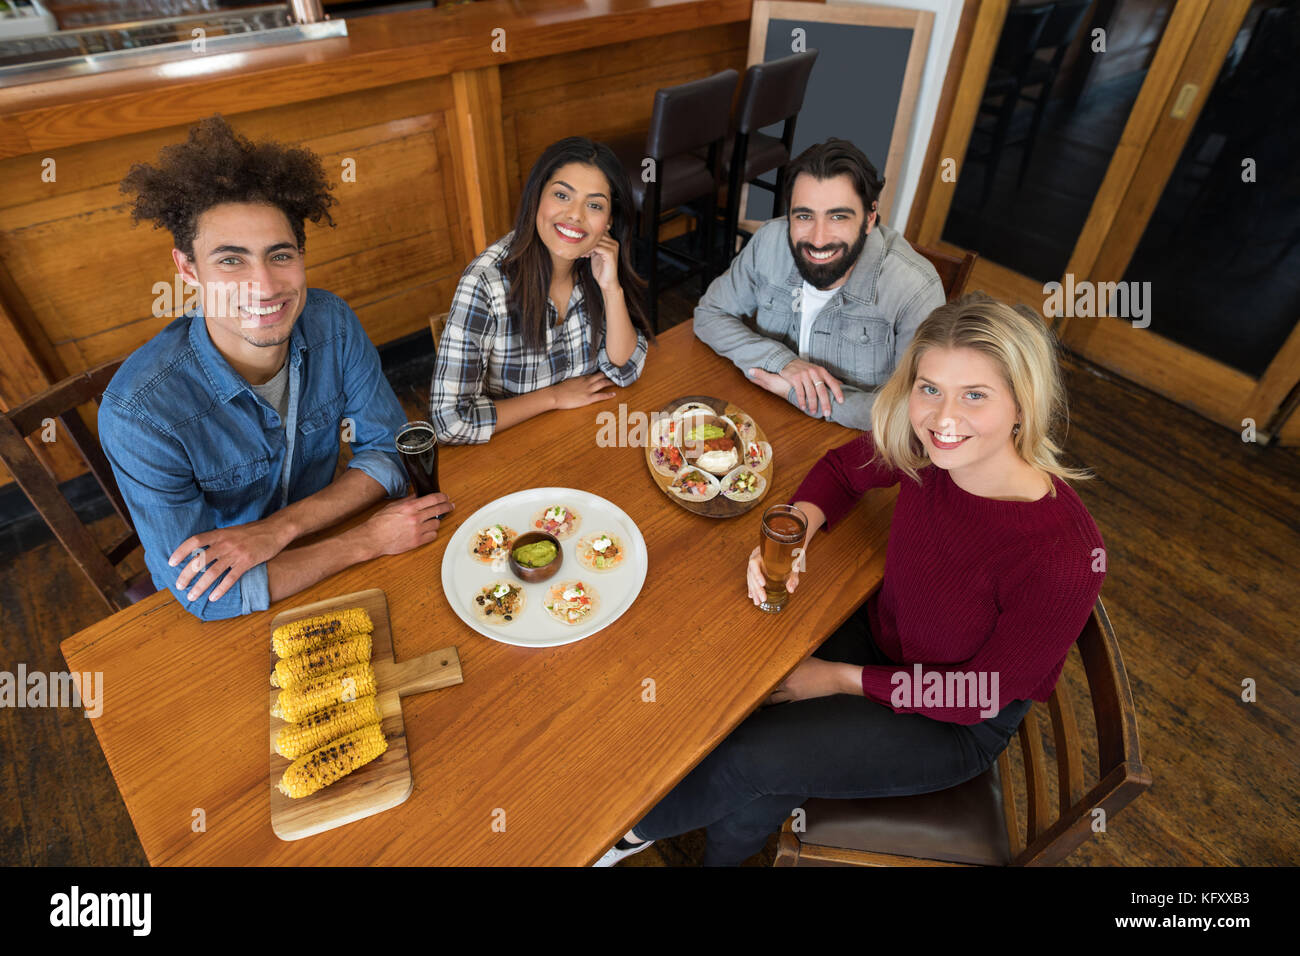 Happy friends sitting together with baby corn, snacks and beer on table in bar - Stock Image